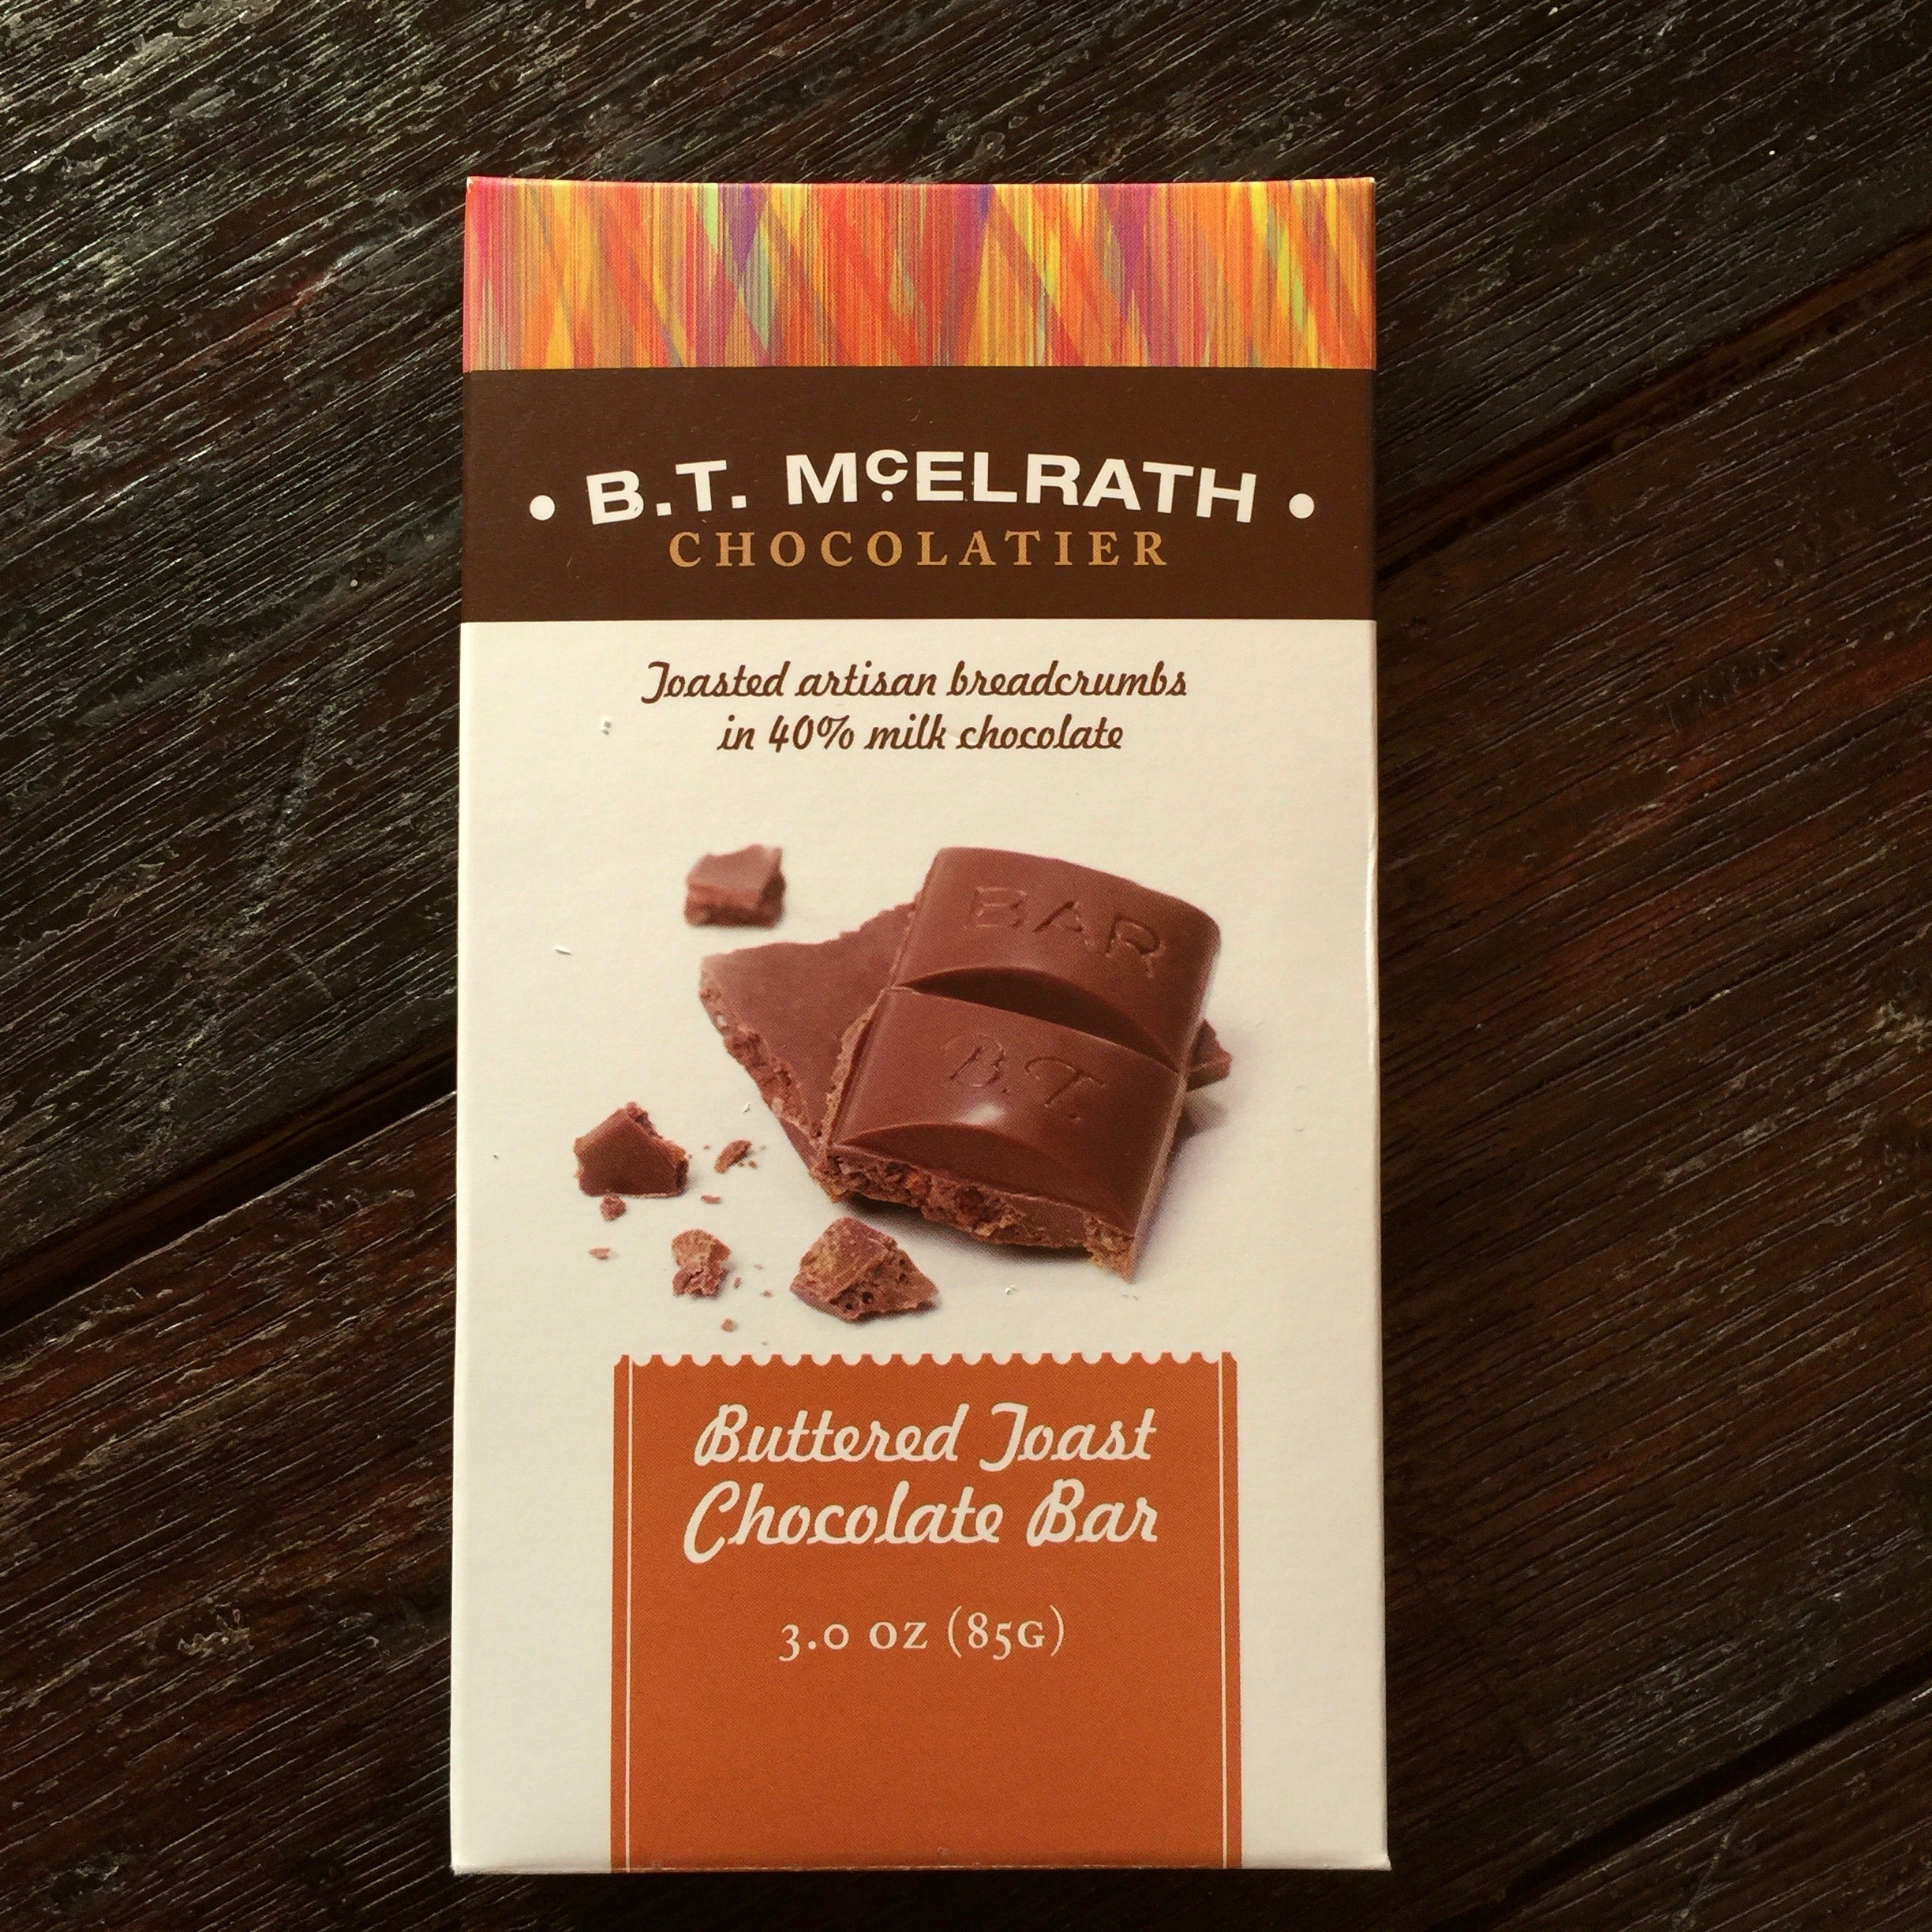 B.T. McElrath Buttered Toast Chocolate Bar From The Chocolate Path®